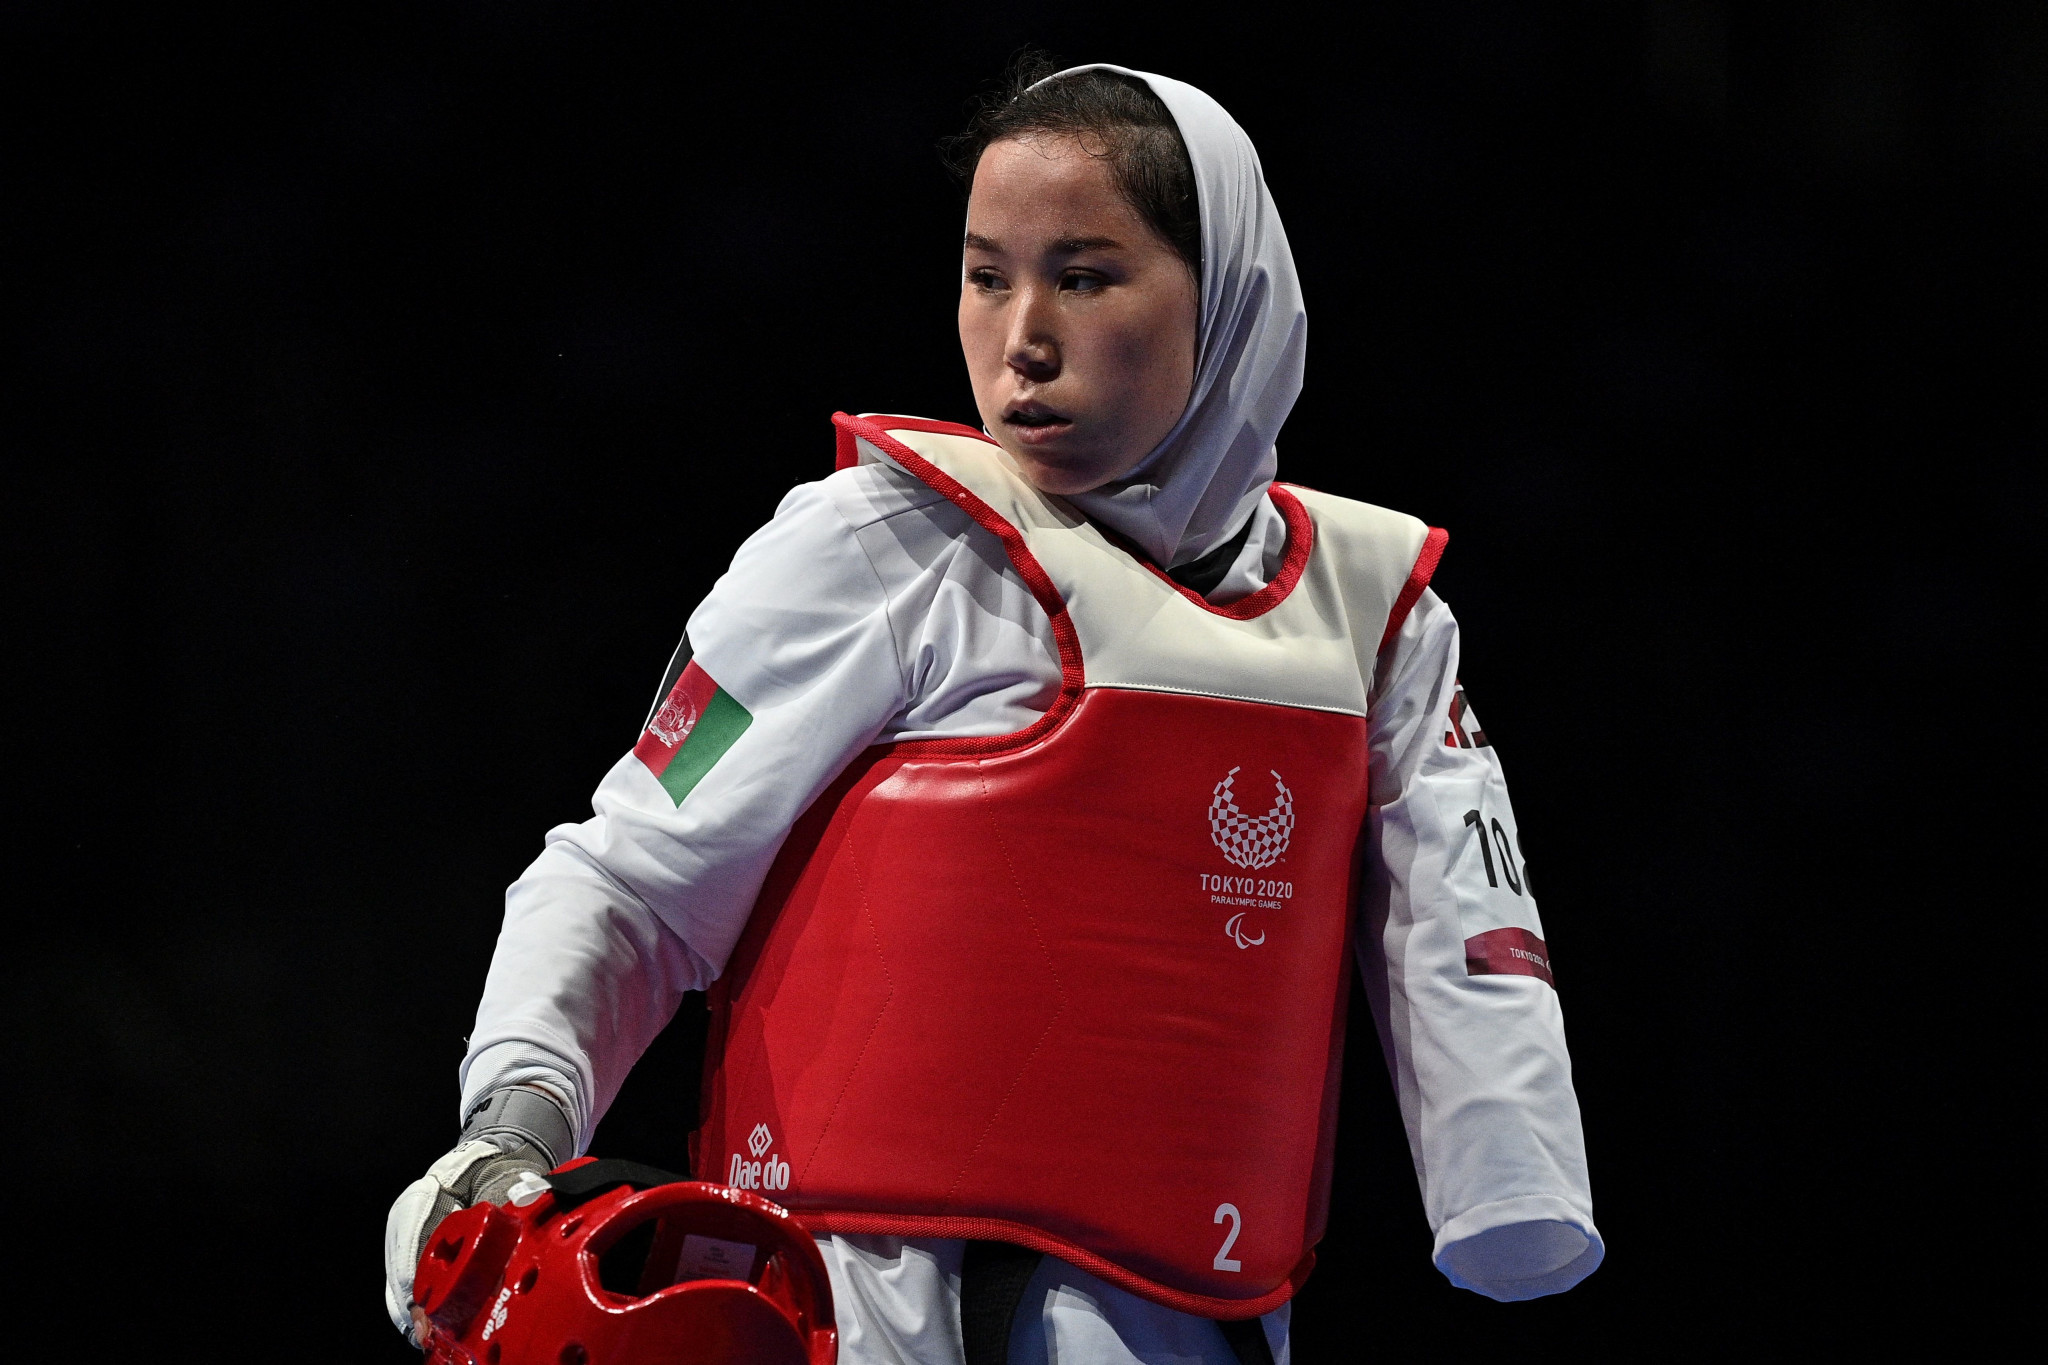 Afghan athletes offered chance to carry flag at Paralympic Closing Ceremony